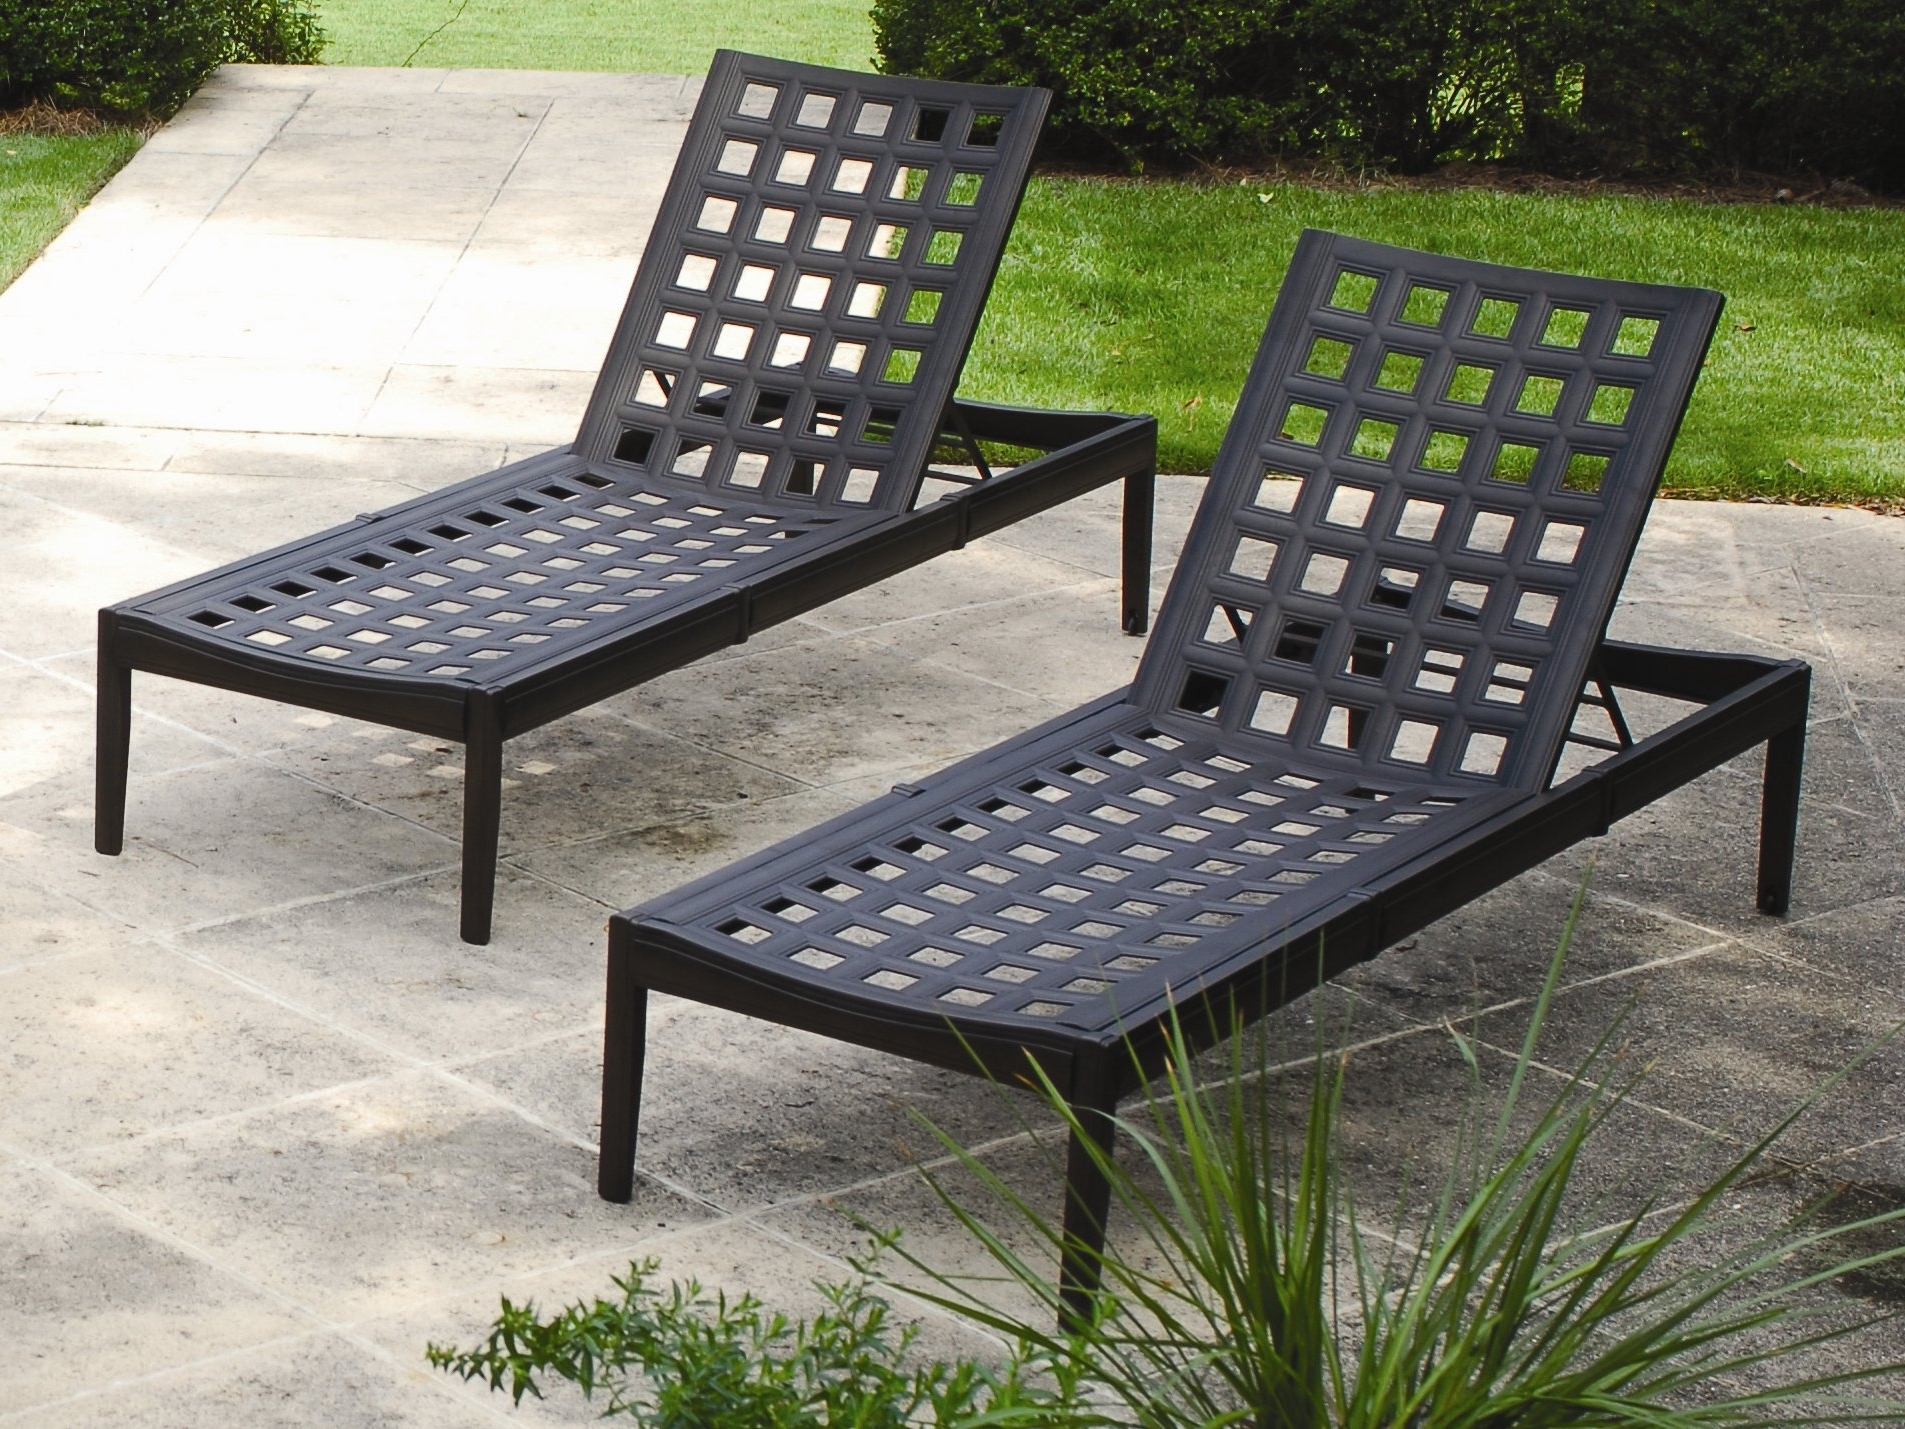 chair set furniture table top first patio cushions iron dining lounge deck wrought heavy aluminum chairs cast outdoor convertible vintage rate metal bench piece garden and chaise